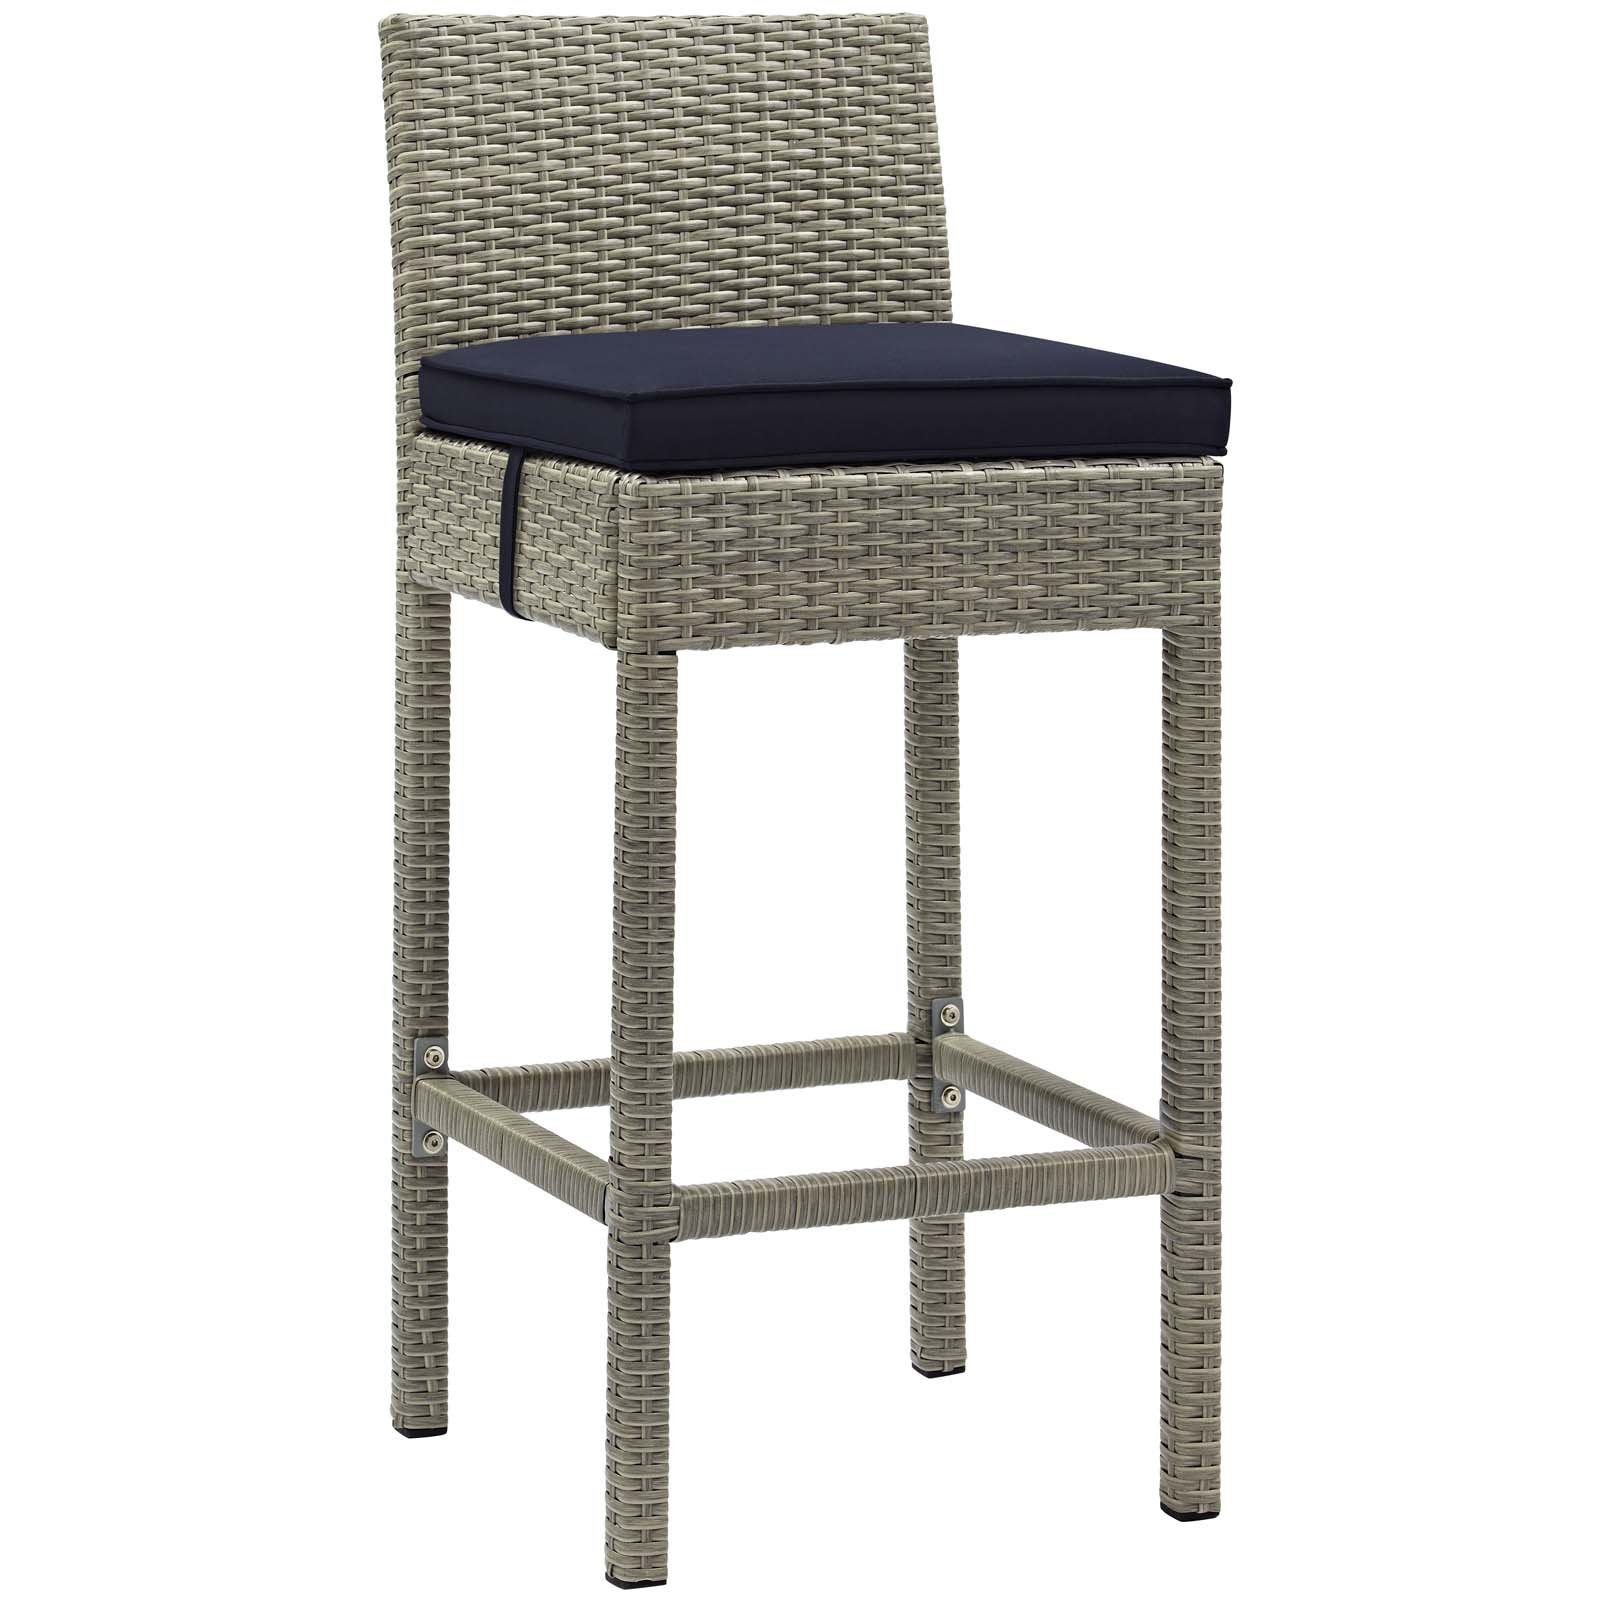 Conduit Outdoor Patio Wicker Rattan Bar Stool Light Gray Navy EEI-2800-LGR-NAV